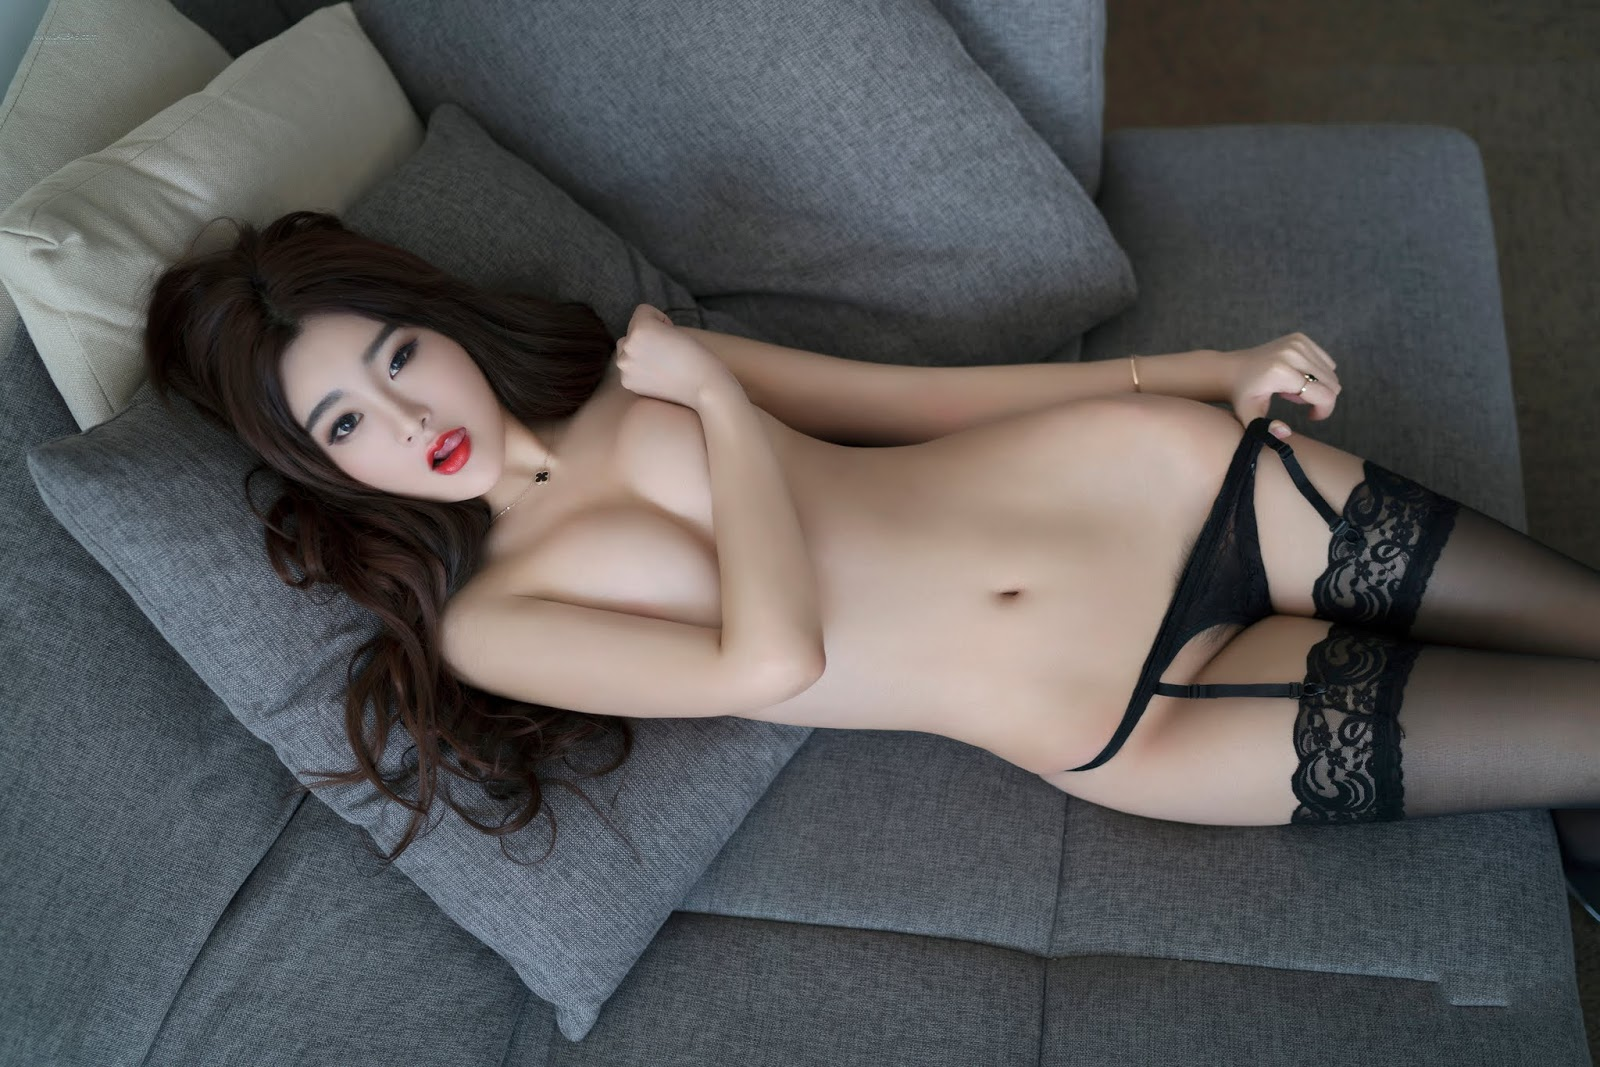 china-sexy-girl-foucks-screamfuck-porn-pix